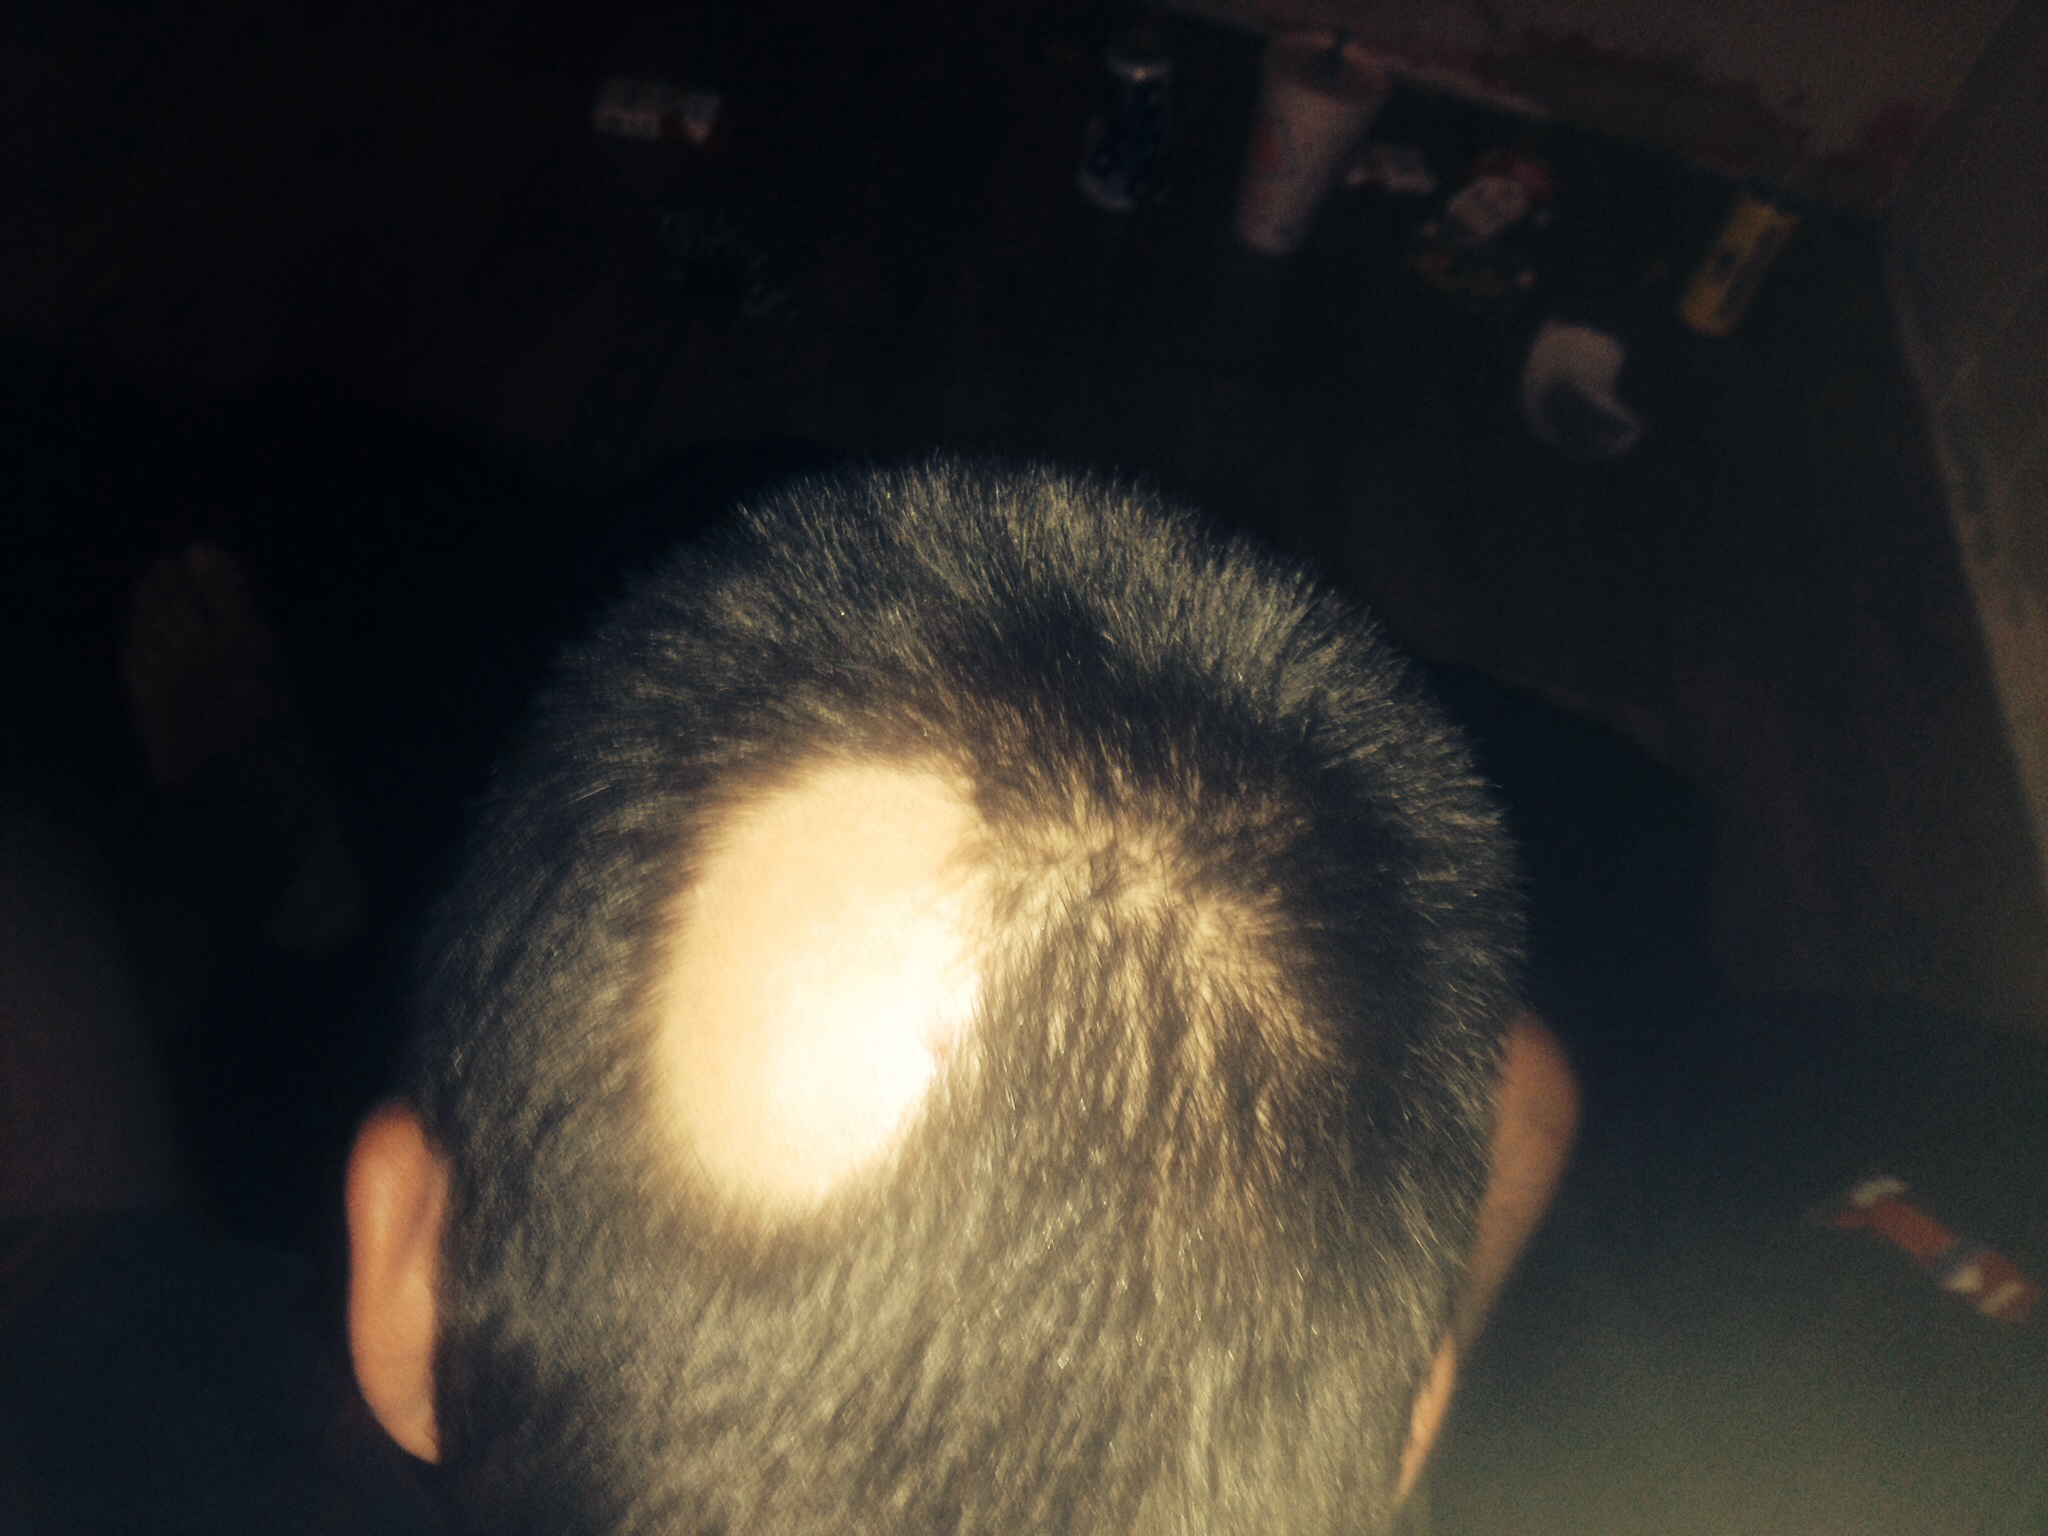 I Got A Hair Cut And I Noticed A Bald Spot Wrassmanmd